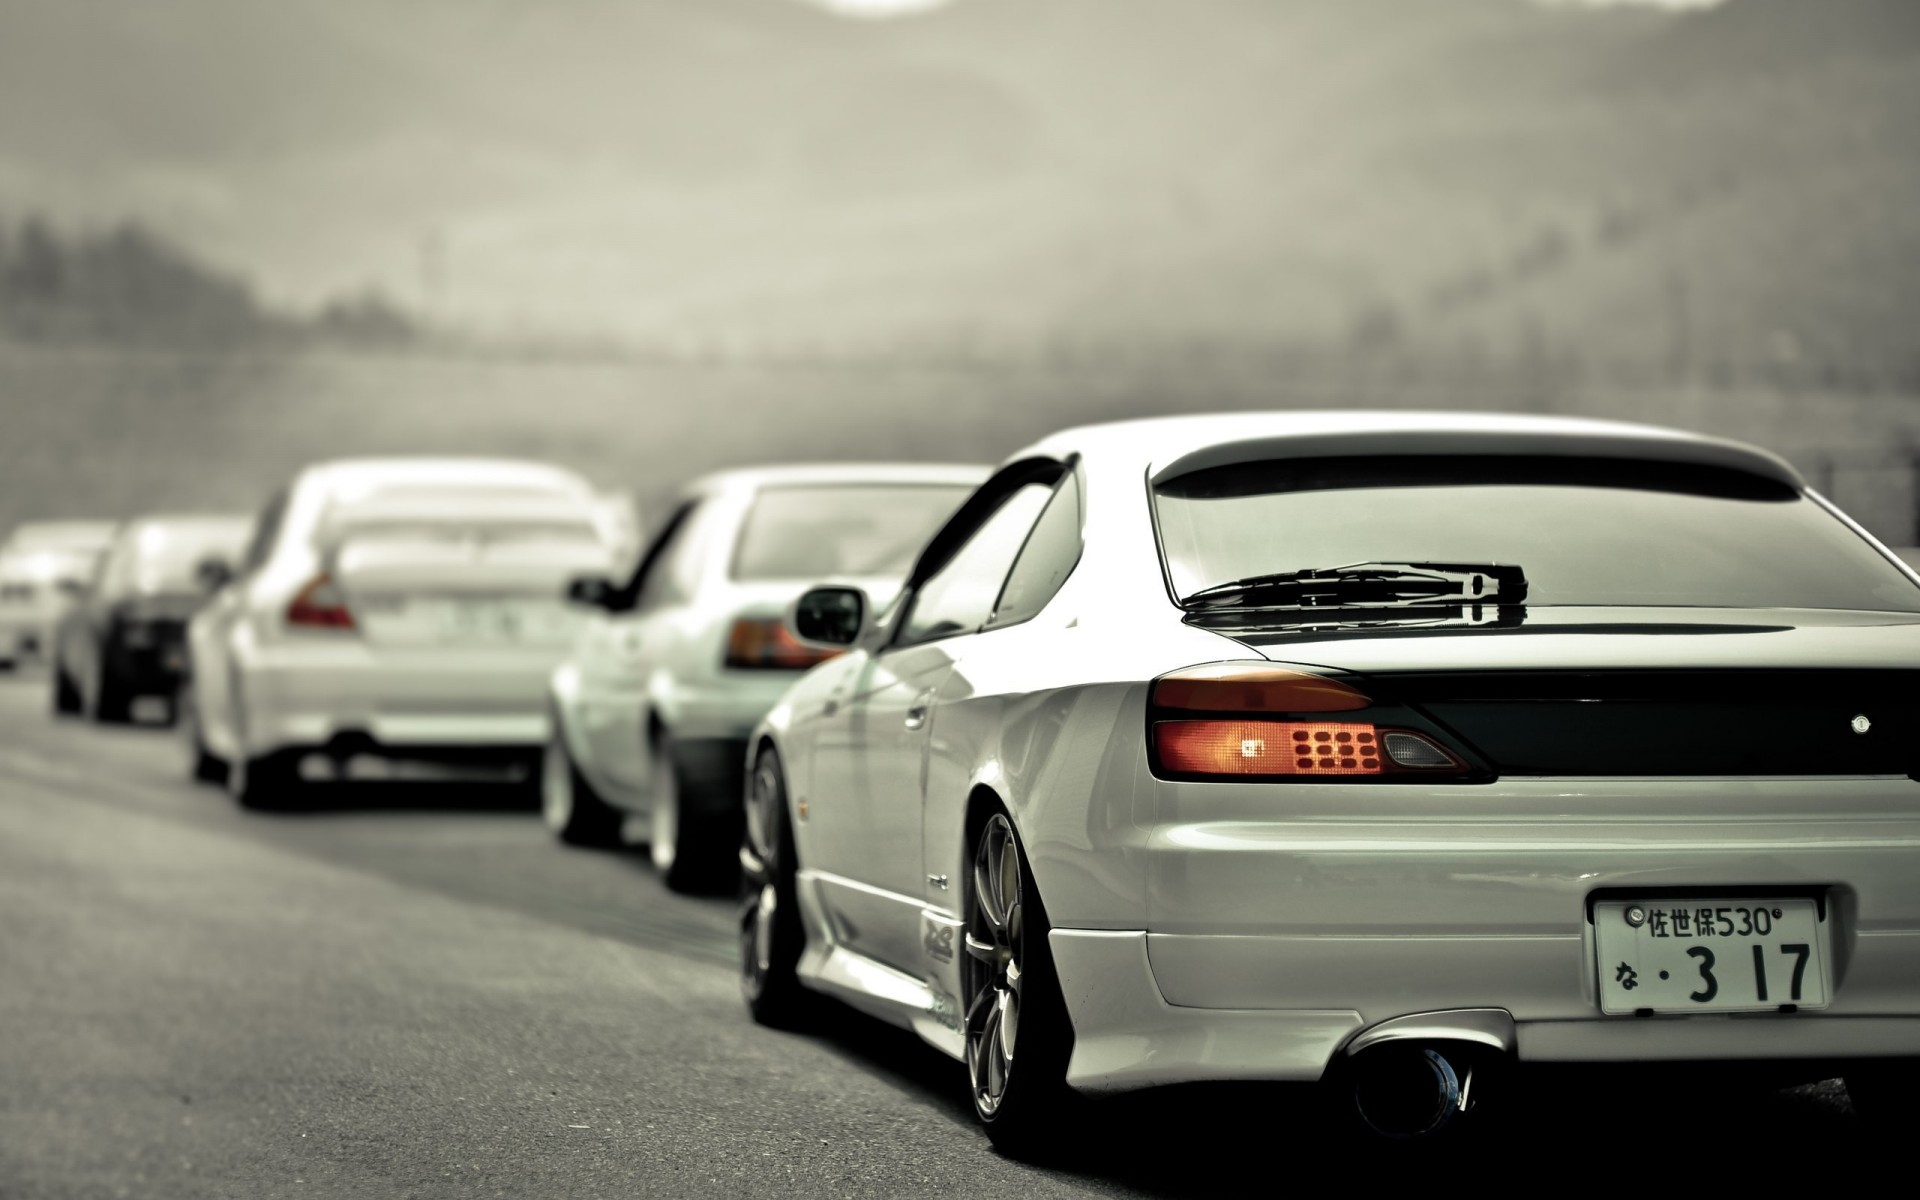 1920x1200 - Nissan Silvia S14 Wallpapers 10